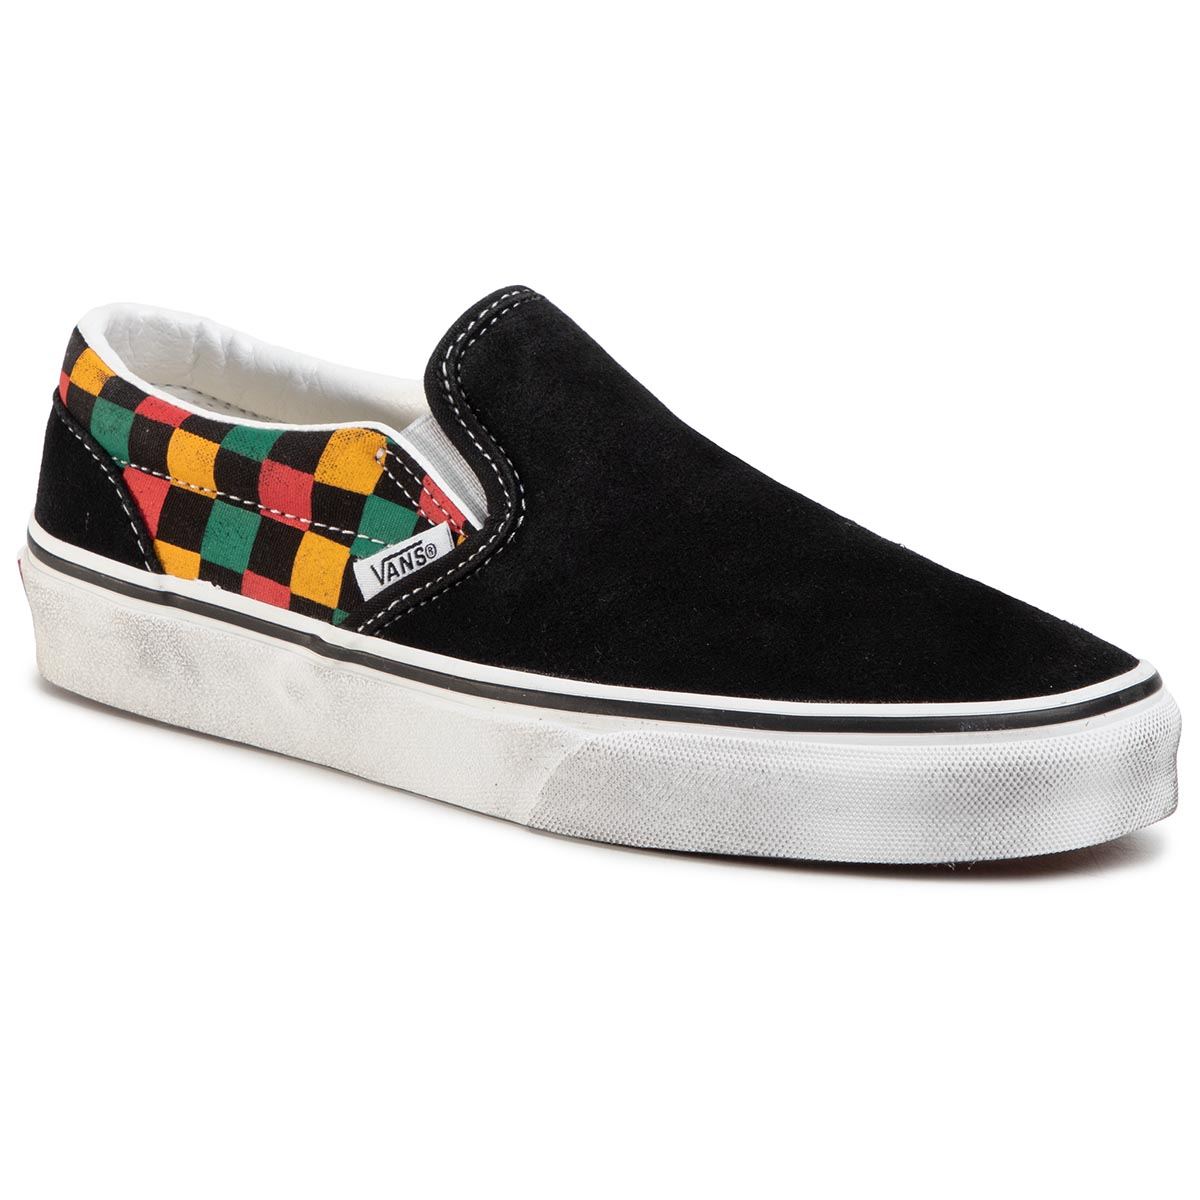 Teniși Vans - Classic Slip-On Vn0a4u38thn1 (Washed) Black/Multi imagine epantofi.ro 2021